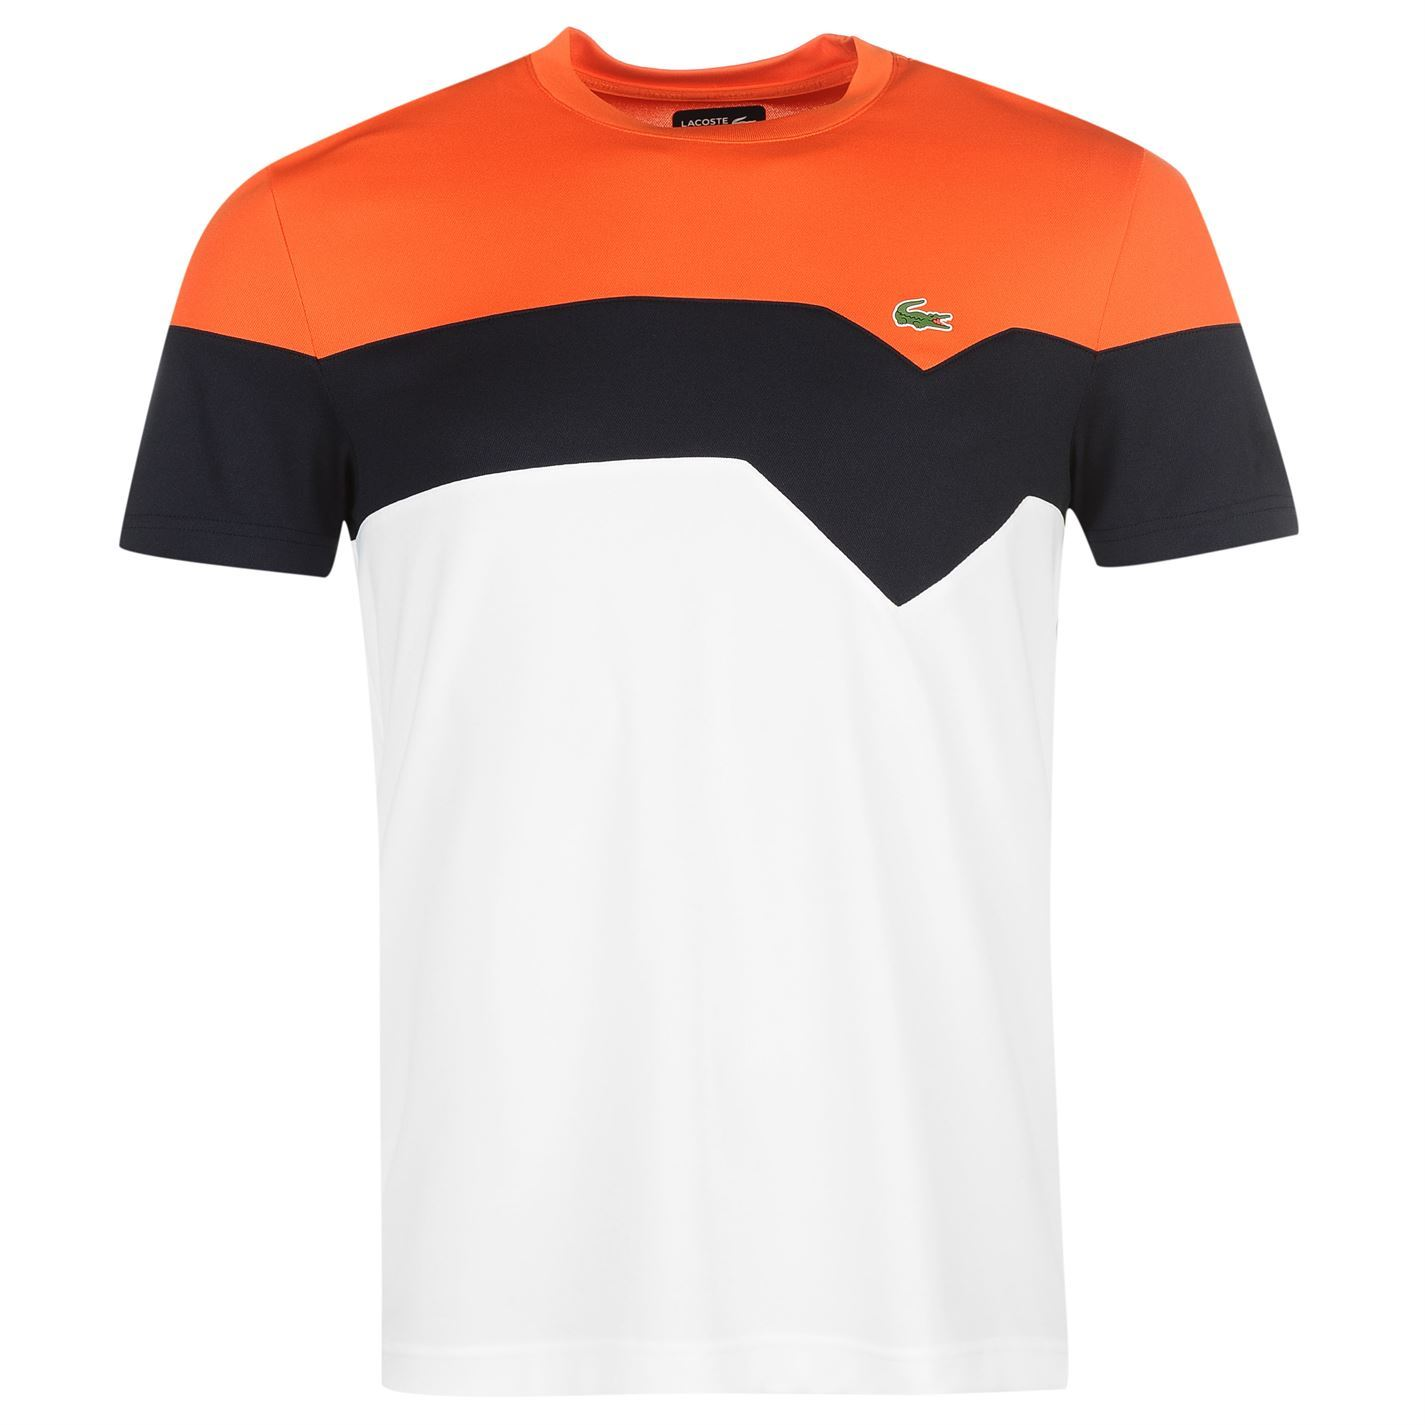 714cb238b209 Details about Lacoste Mens Sport Block Colour T Shirt New